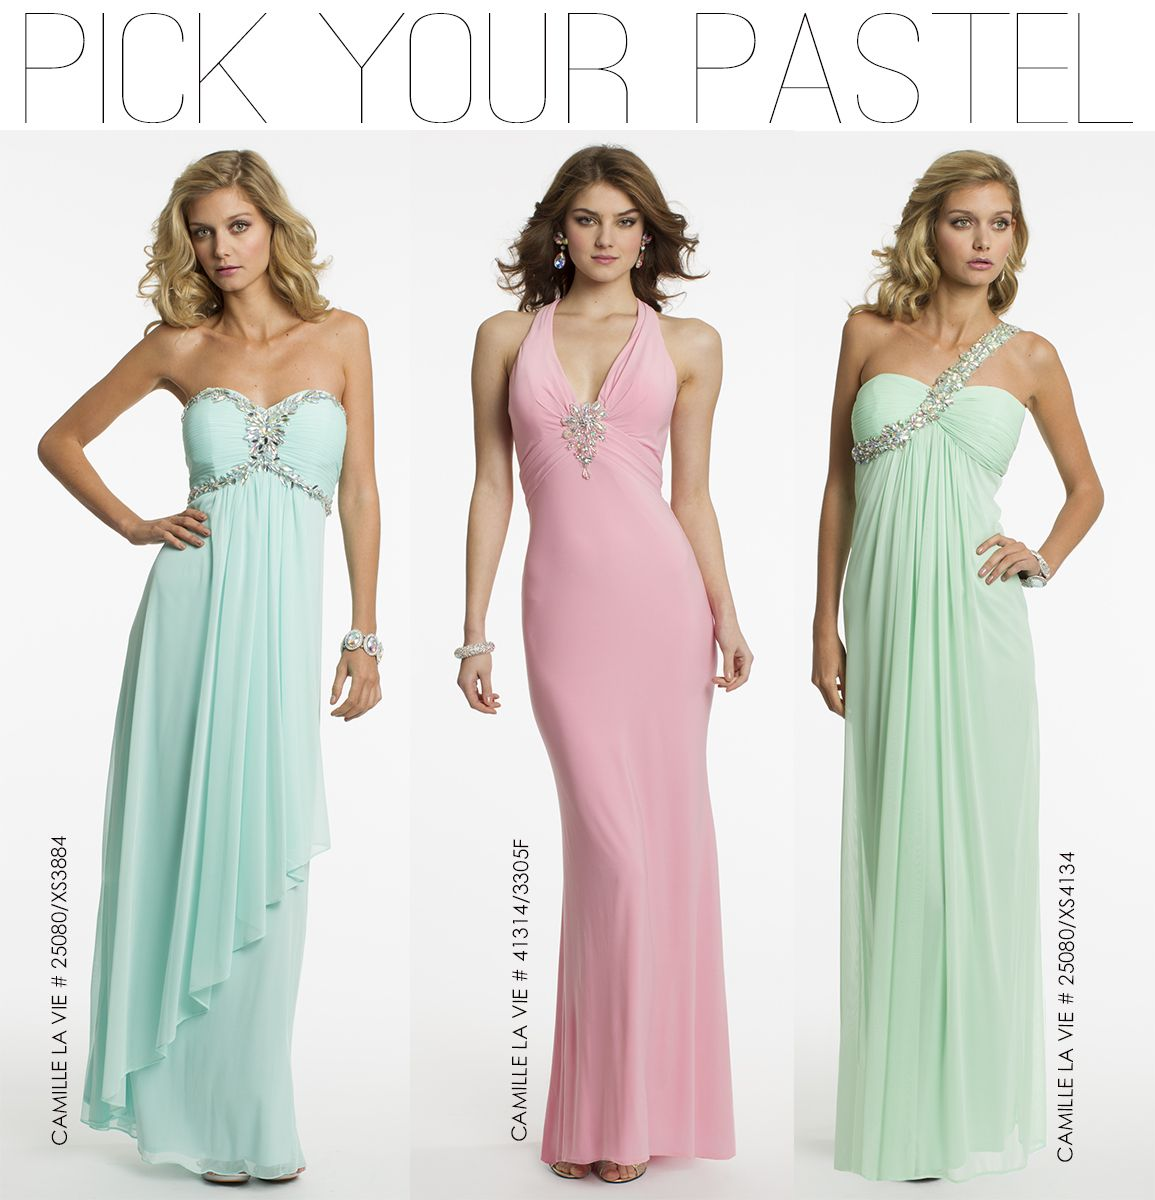 Blue, Pink and Green Pastel Prom Dresses by Camille La Vie | prom ...